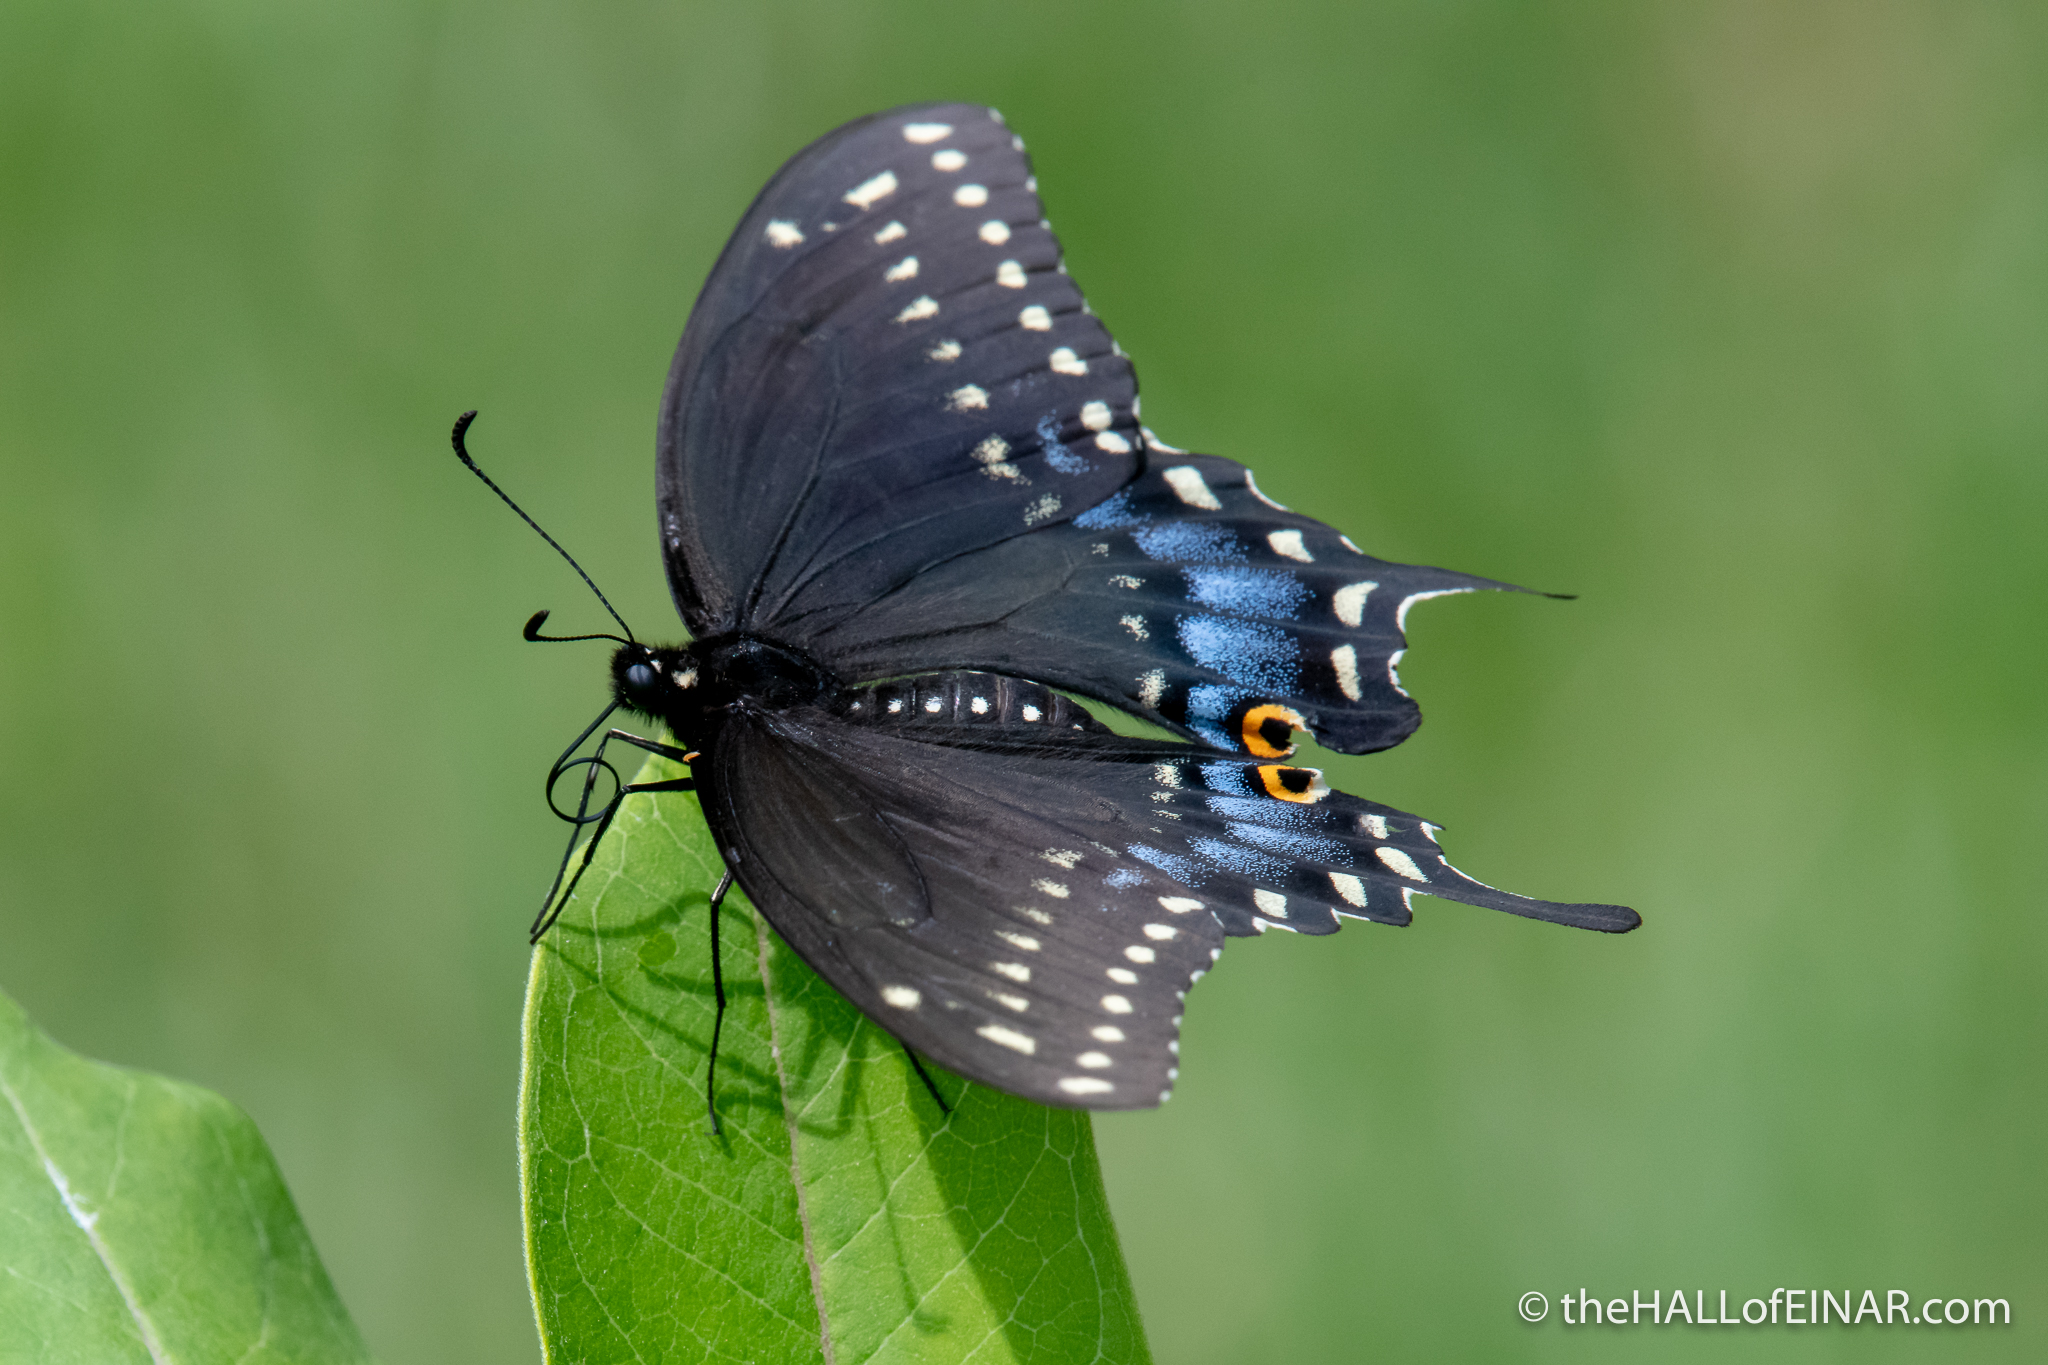 Black swallowtail - Papilio polyxenes - The Hall of Einar - photograph (c) David Bailey (not the)